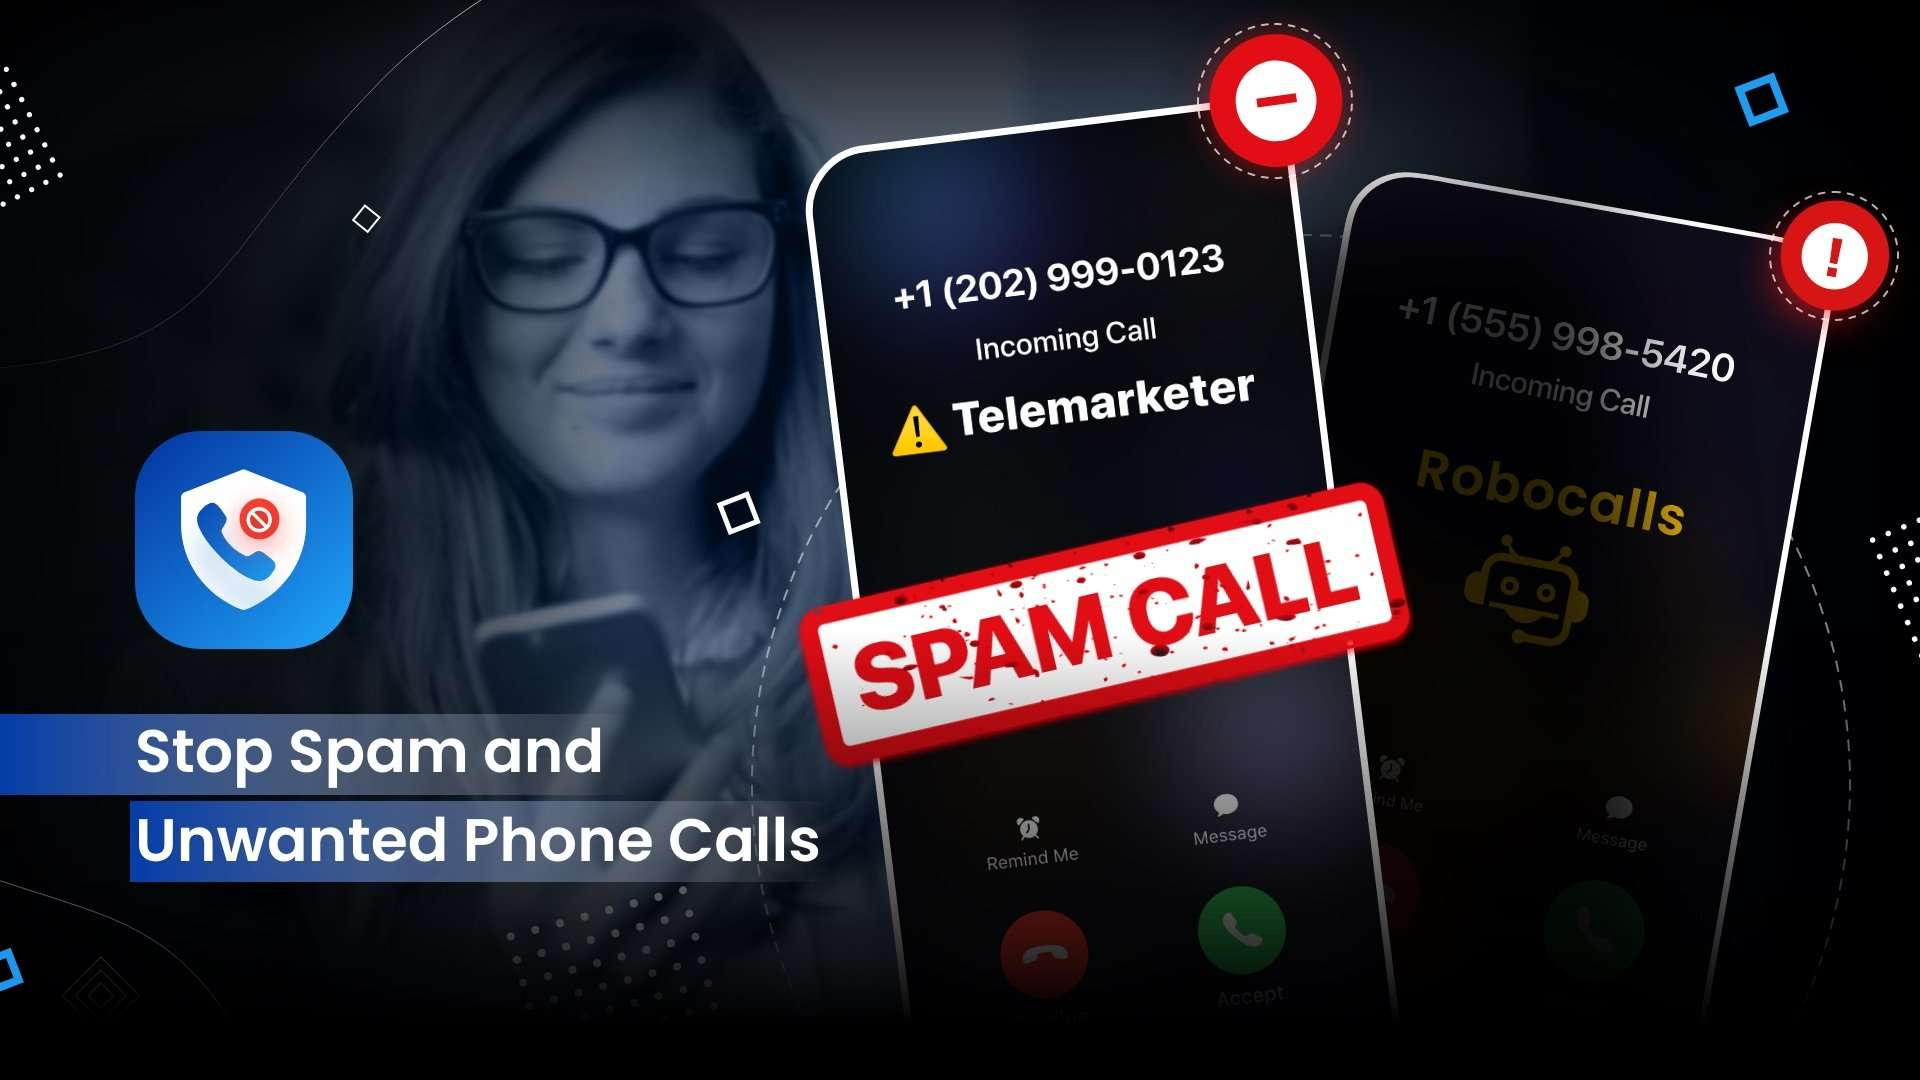 How to Stop Spam Calls on iPhone